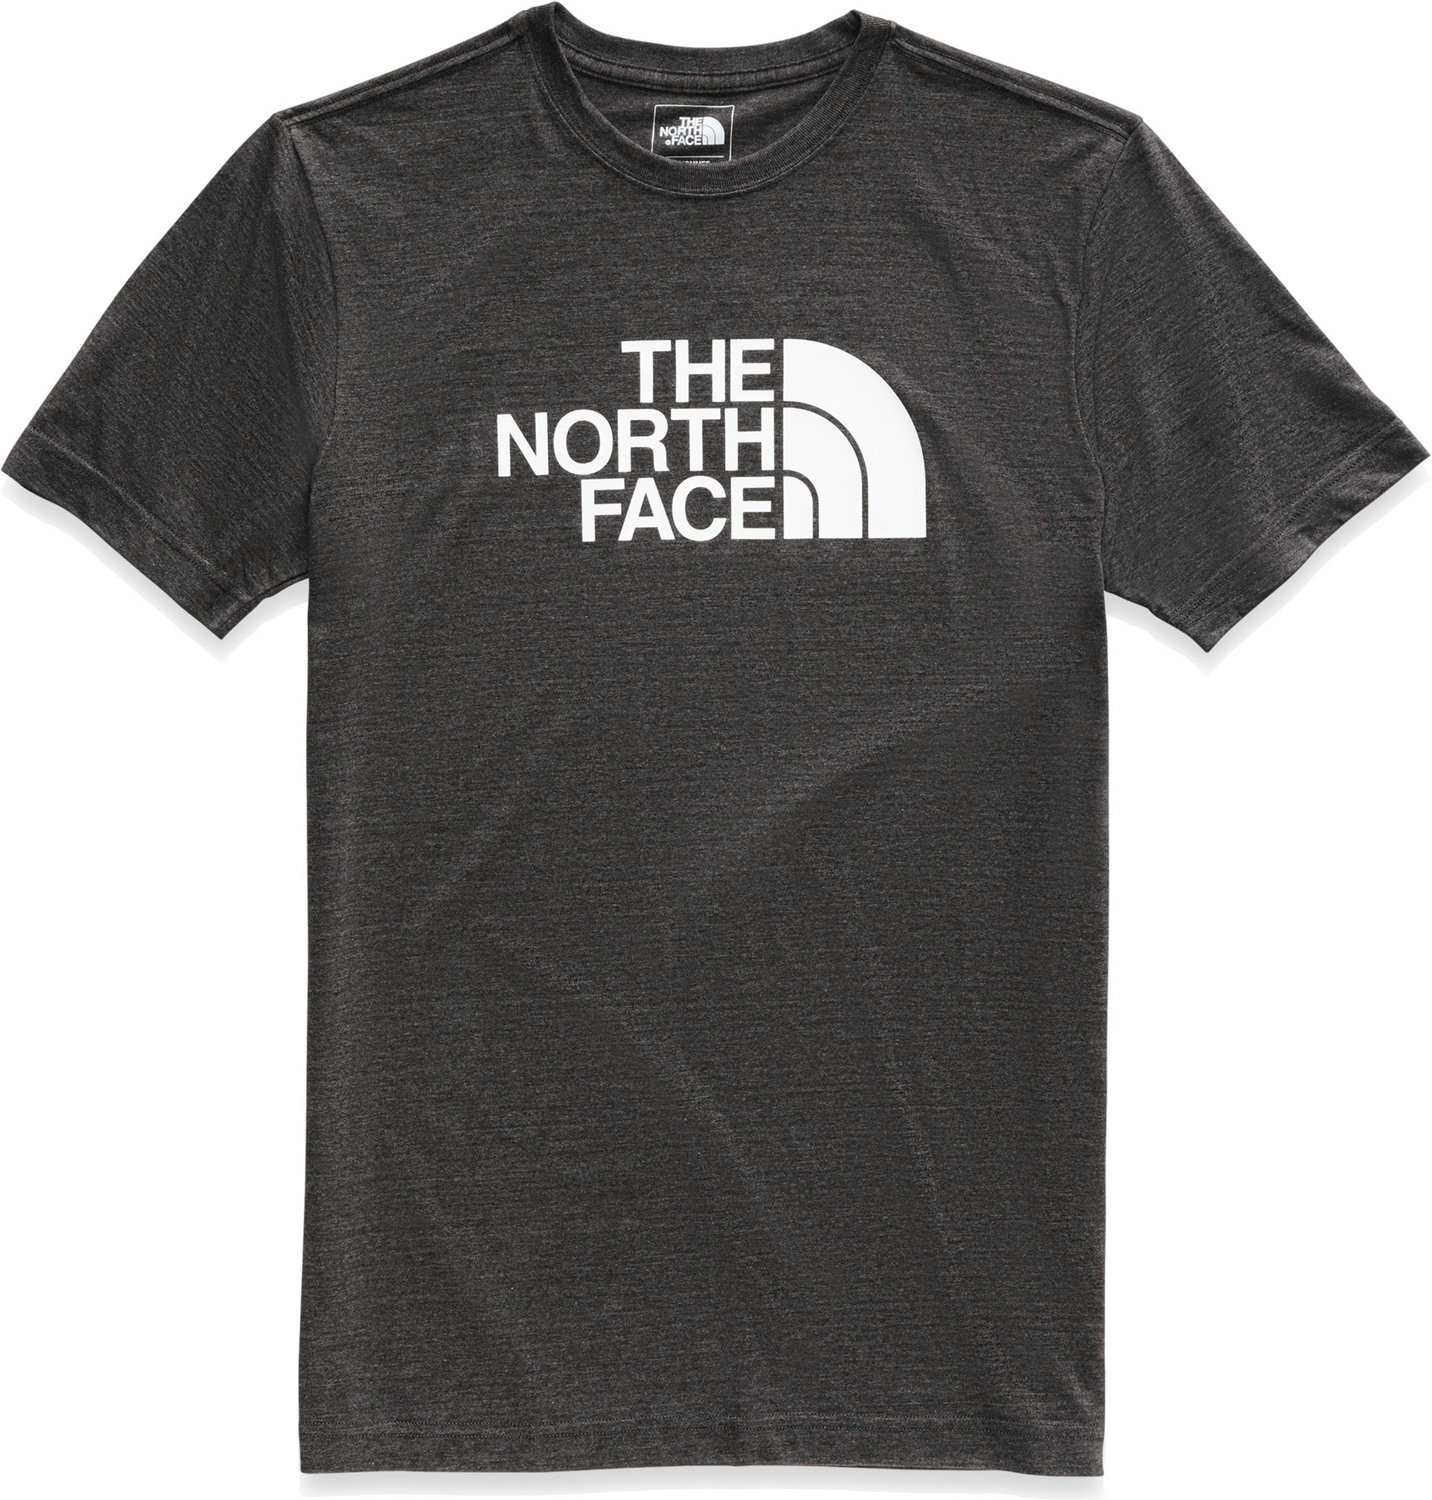 490917fc Display product reviews for The North Face Men's Half Dome Triblend Short  Sleeve T-shirt